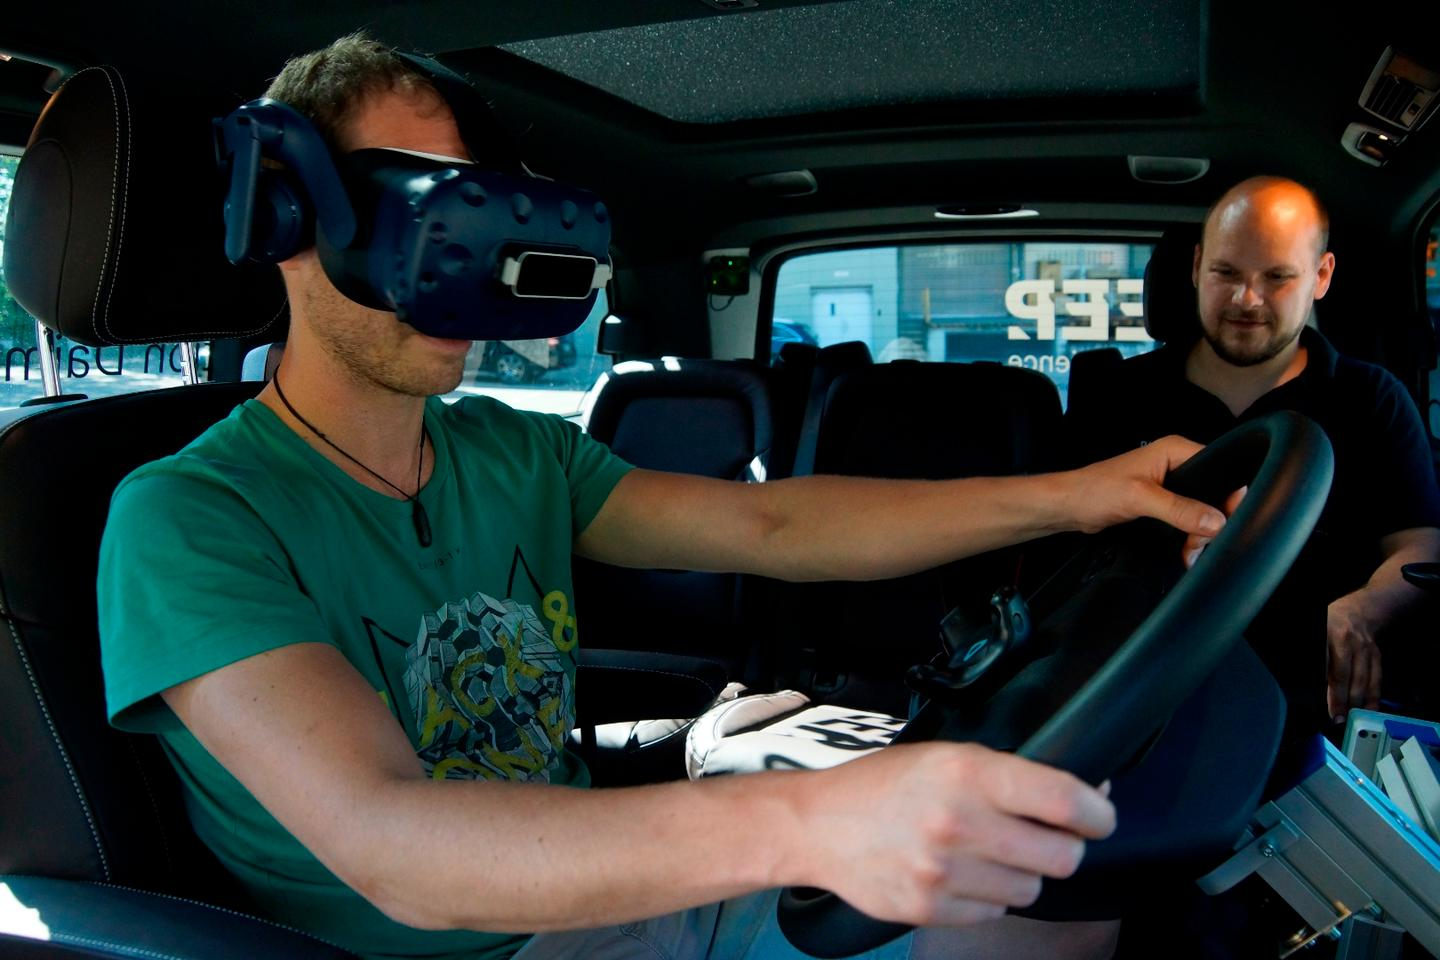 Randomly-selected truck drivers are being given the chance to try out prototype technologies in a mobile test lab